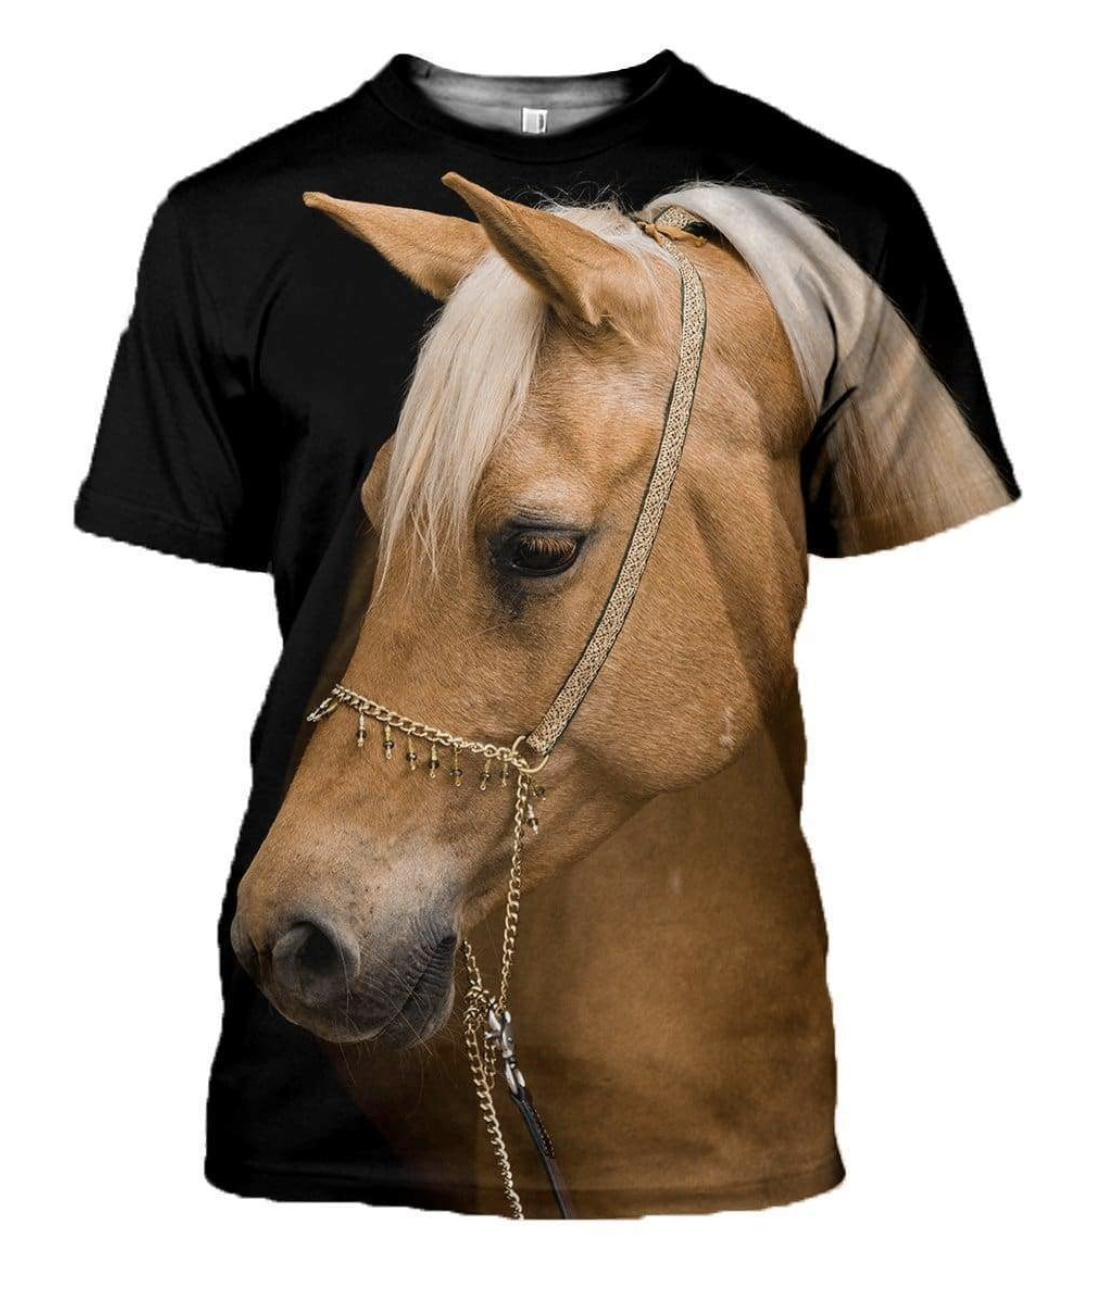 Blondie 3D Horse Printed T-Shirt